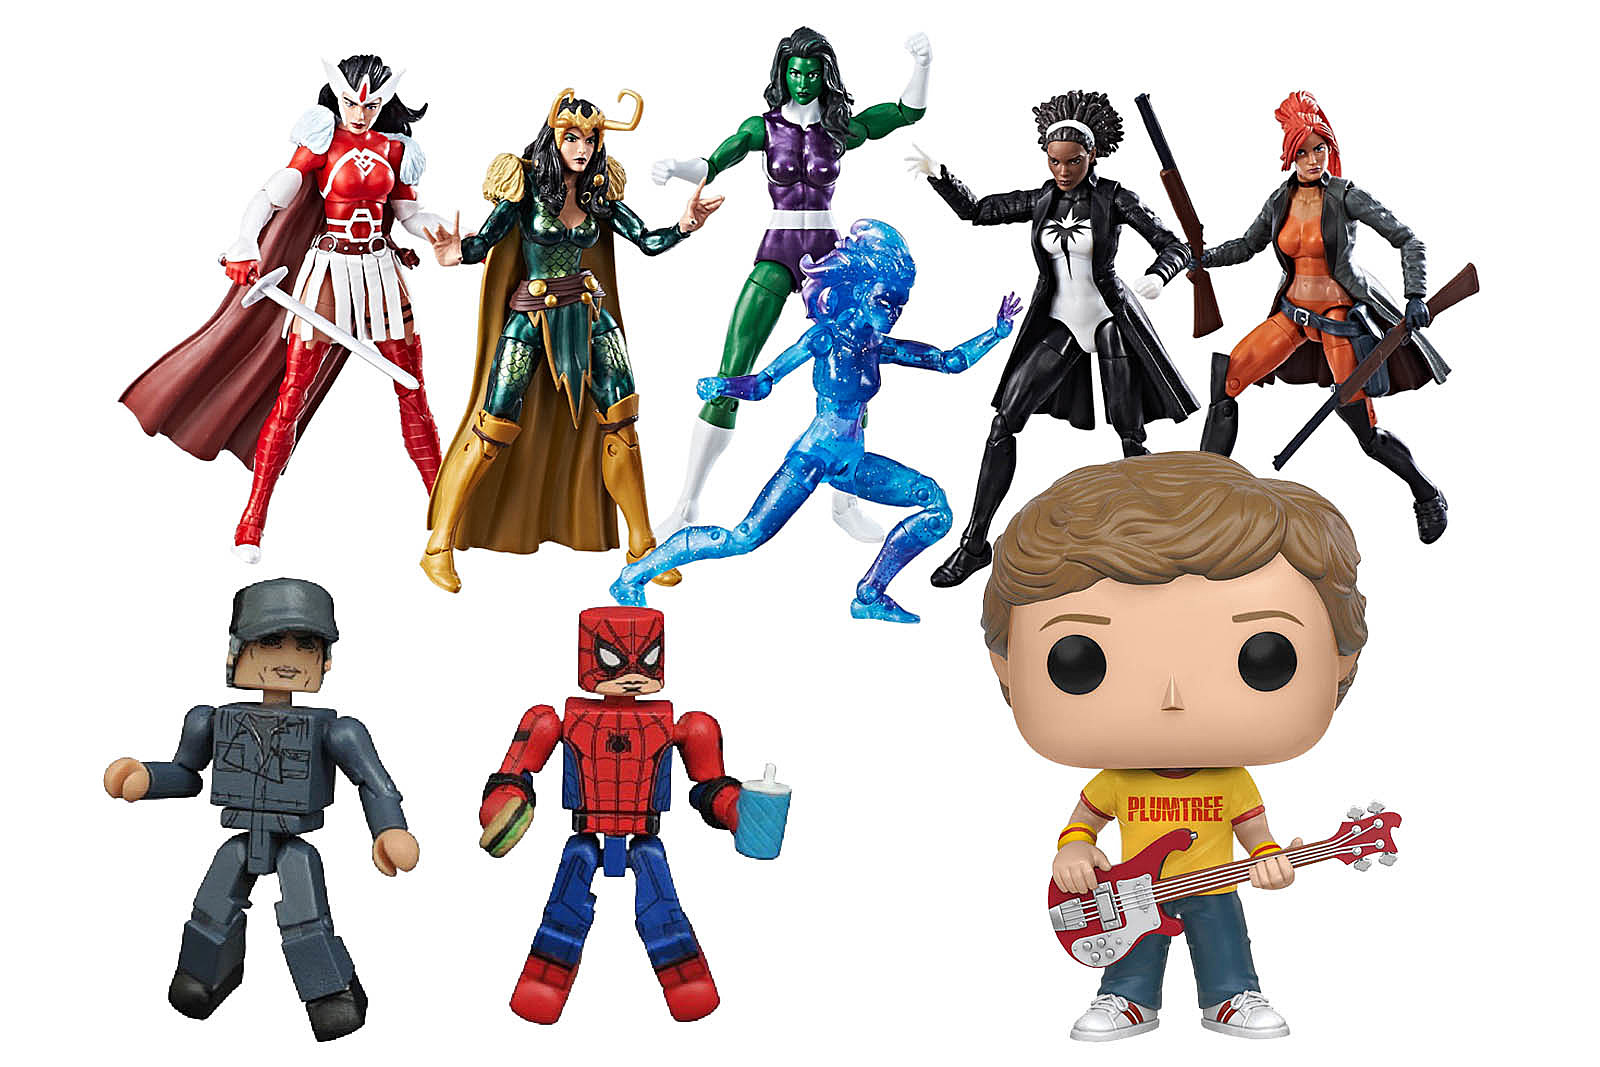 Toys R Us and Entertainment Earth Team For Some Diverse SDCC 2017 Exclusives  sc 1 st  ScreenCrush & All The Toys R Us and Entertainment Earth SDCC 2017 Exclusives